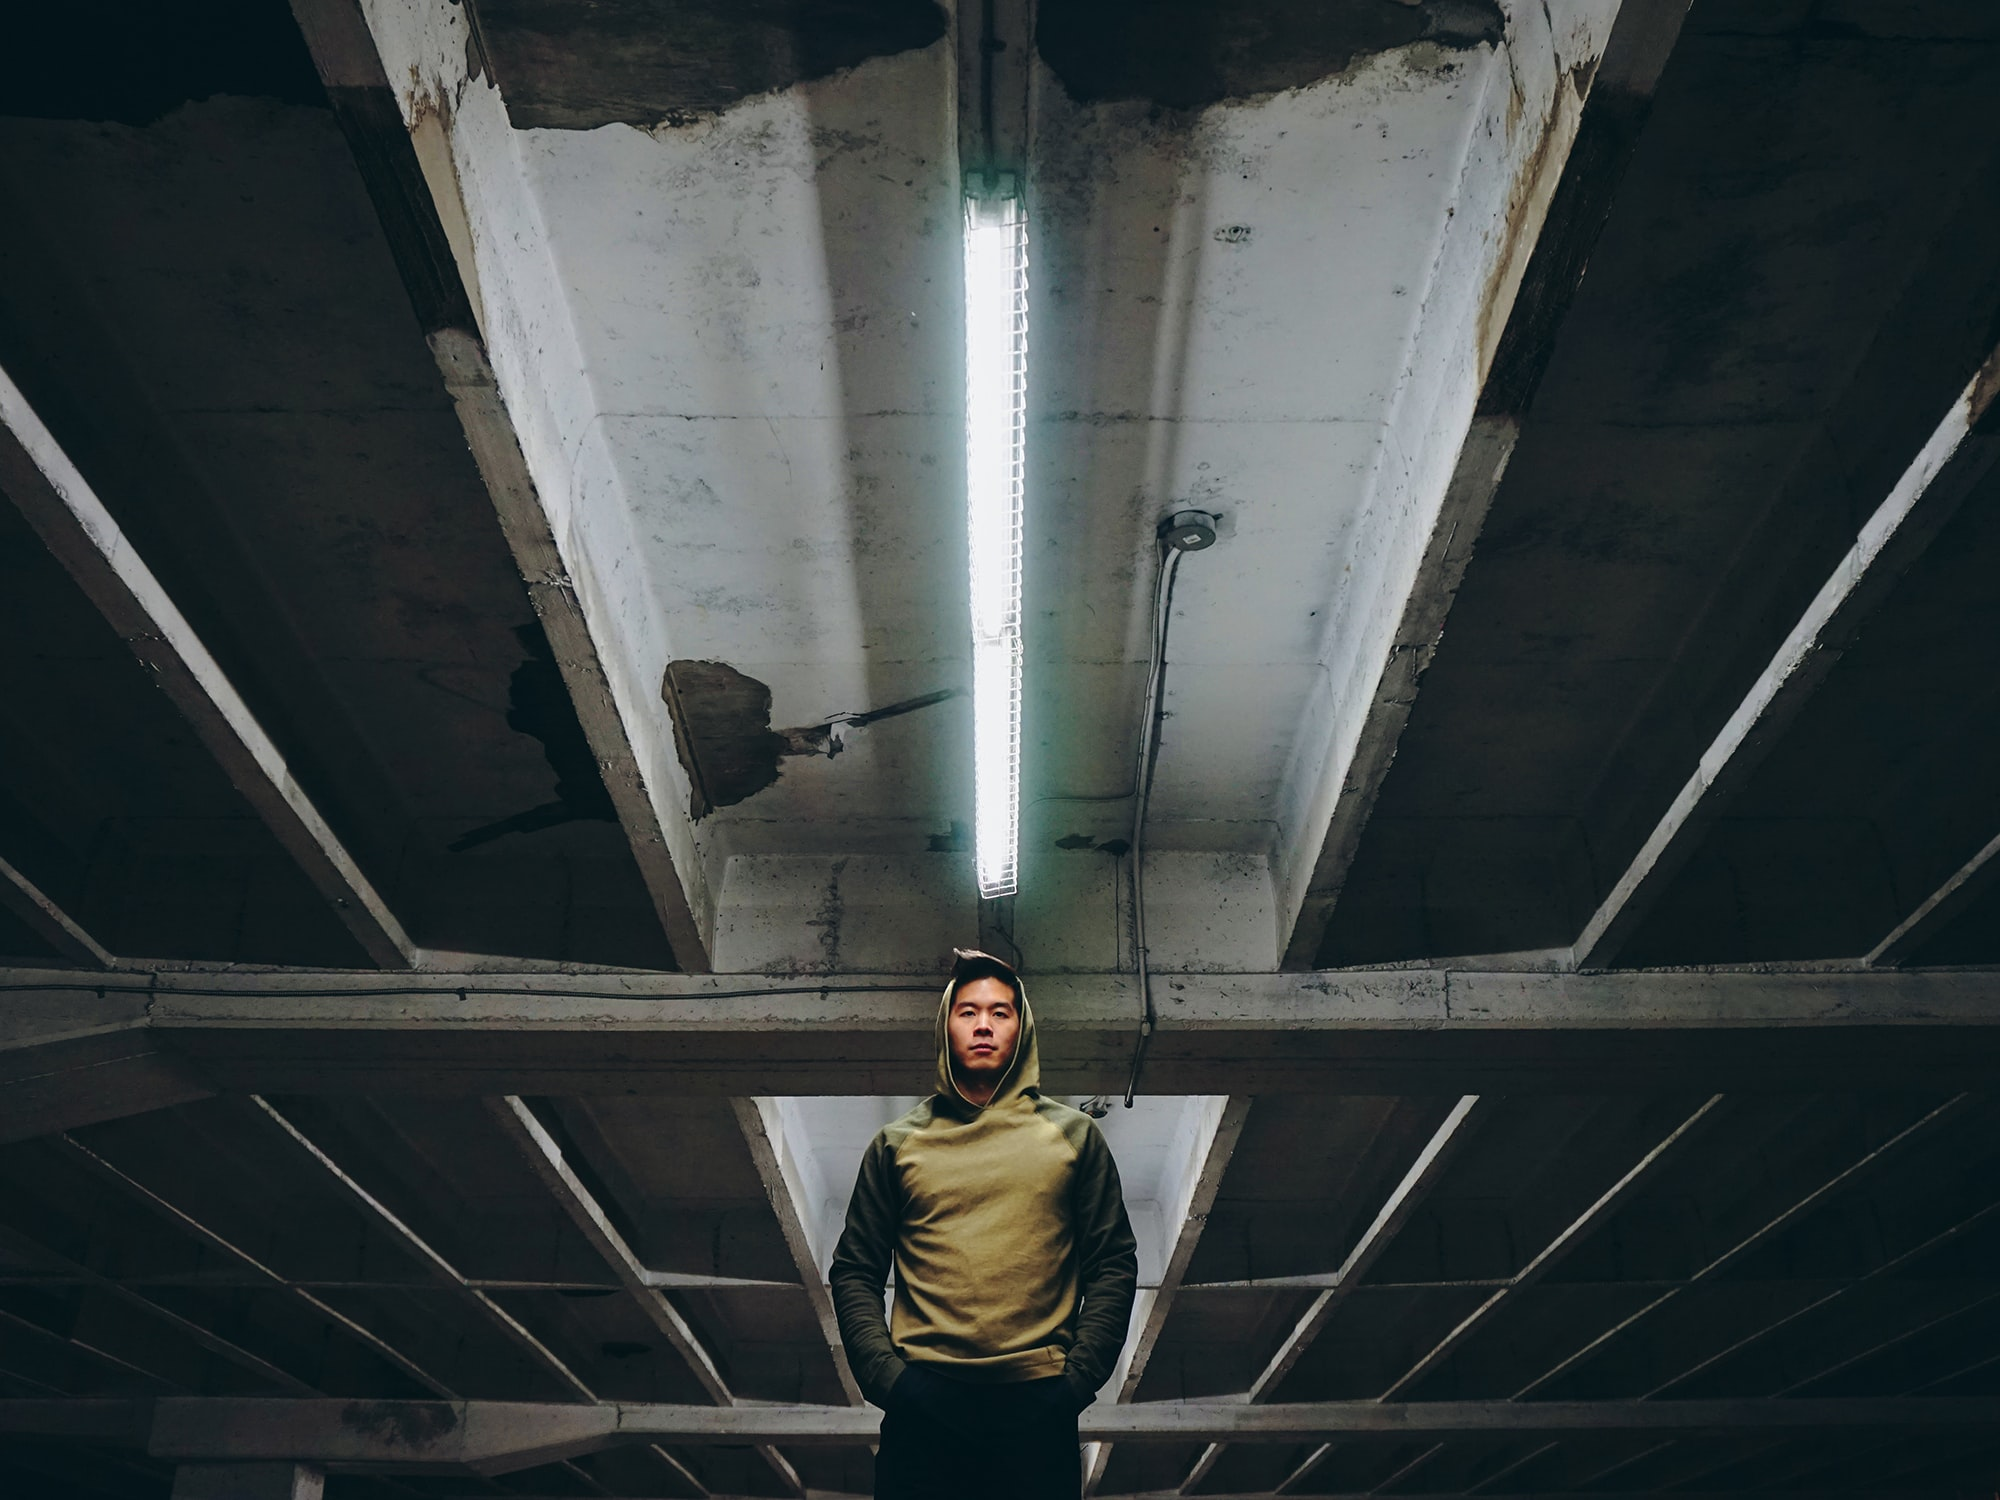 low-angle photography of man wearing hooding standing on underground parking lot